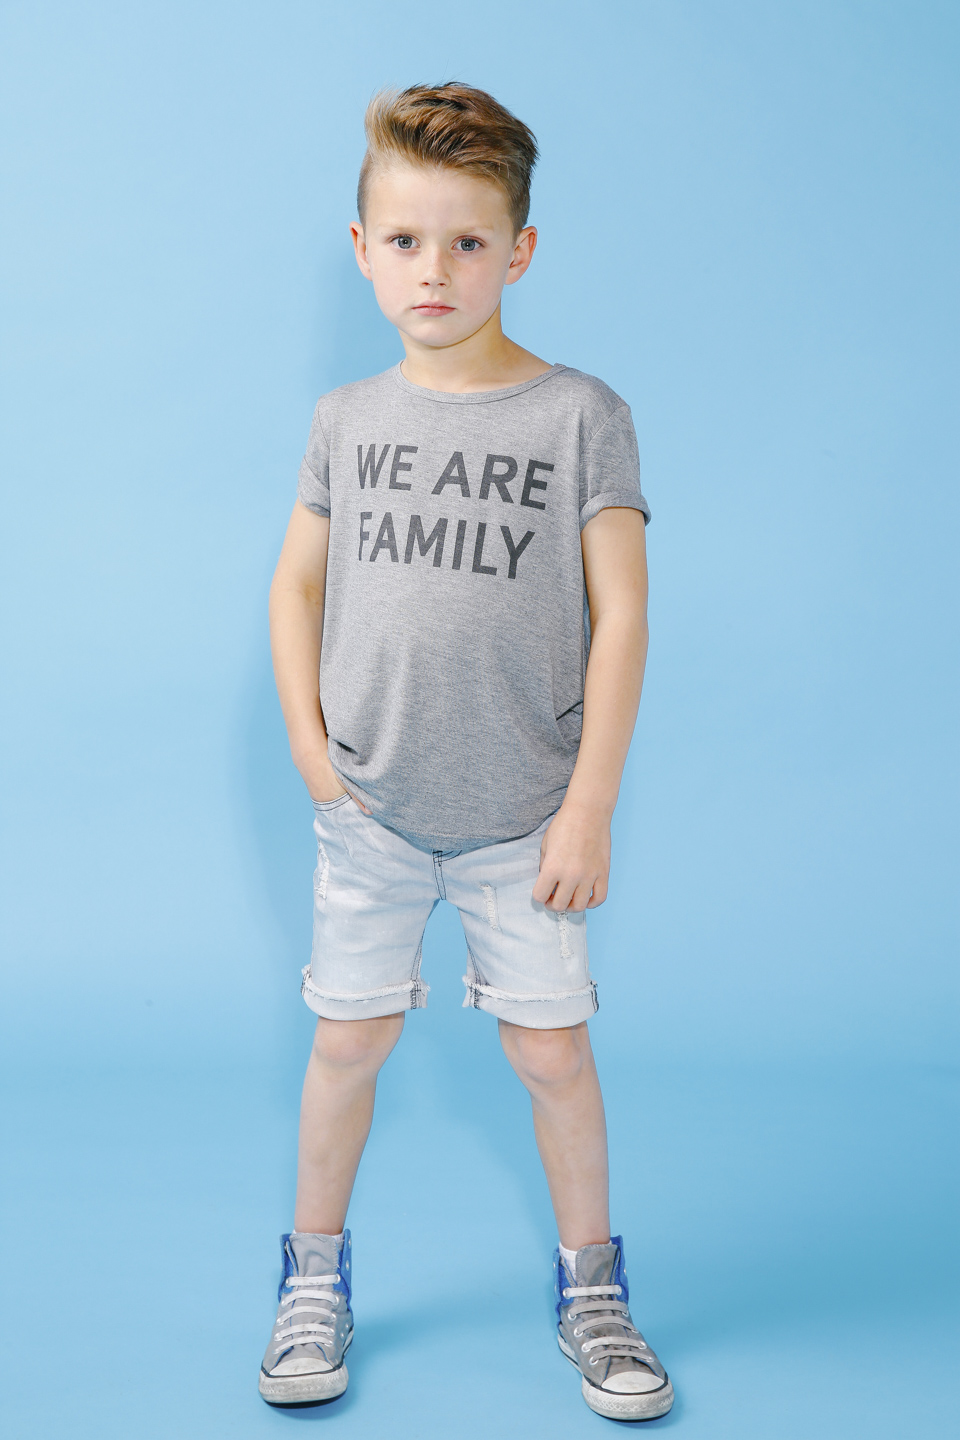 We Are Family Tee & Kerouac Shorts.jpg